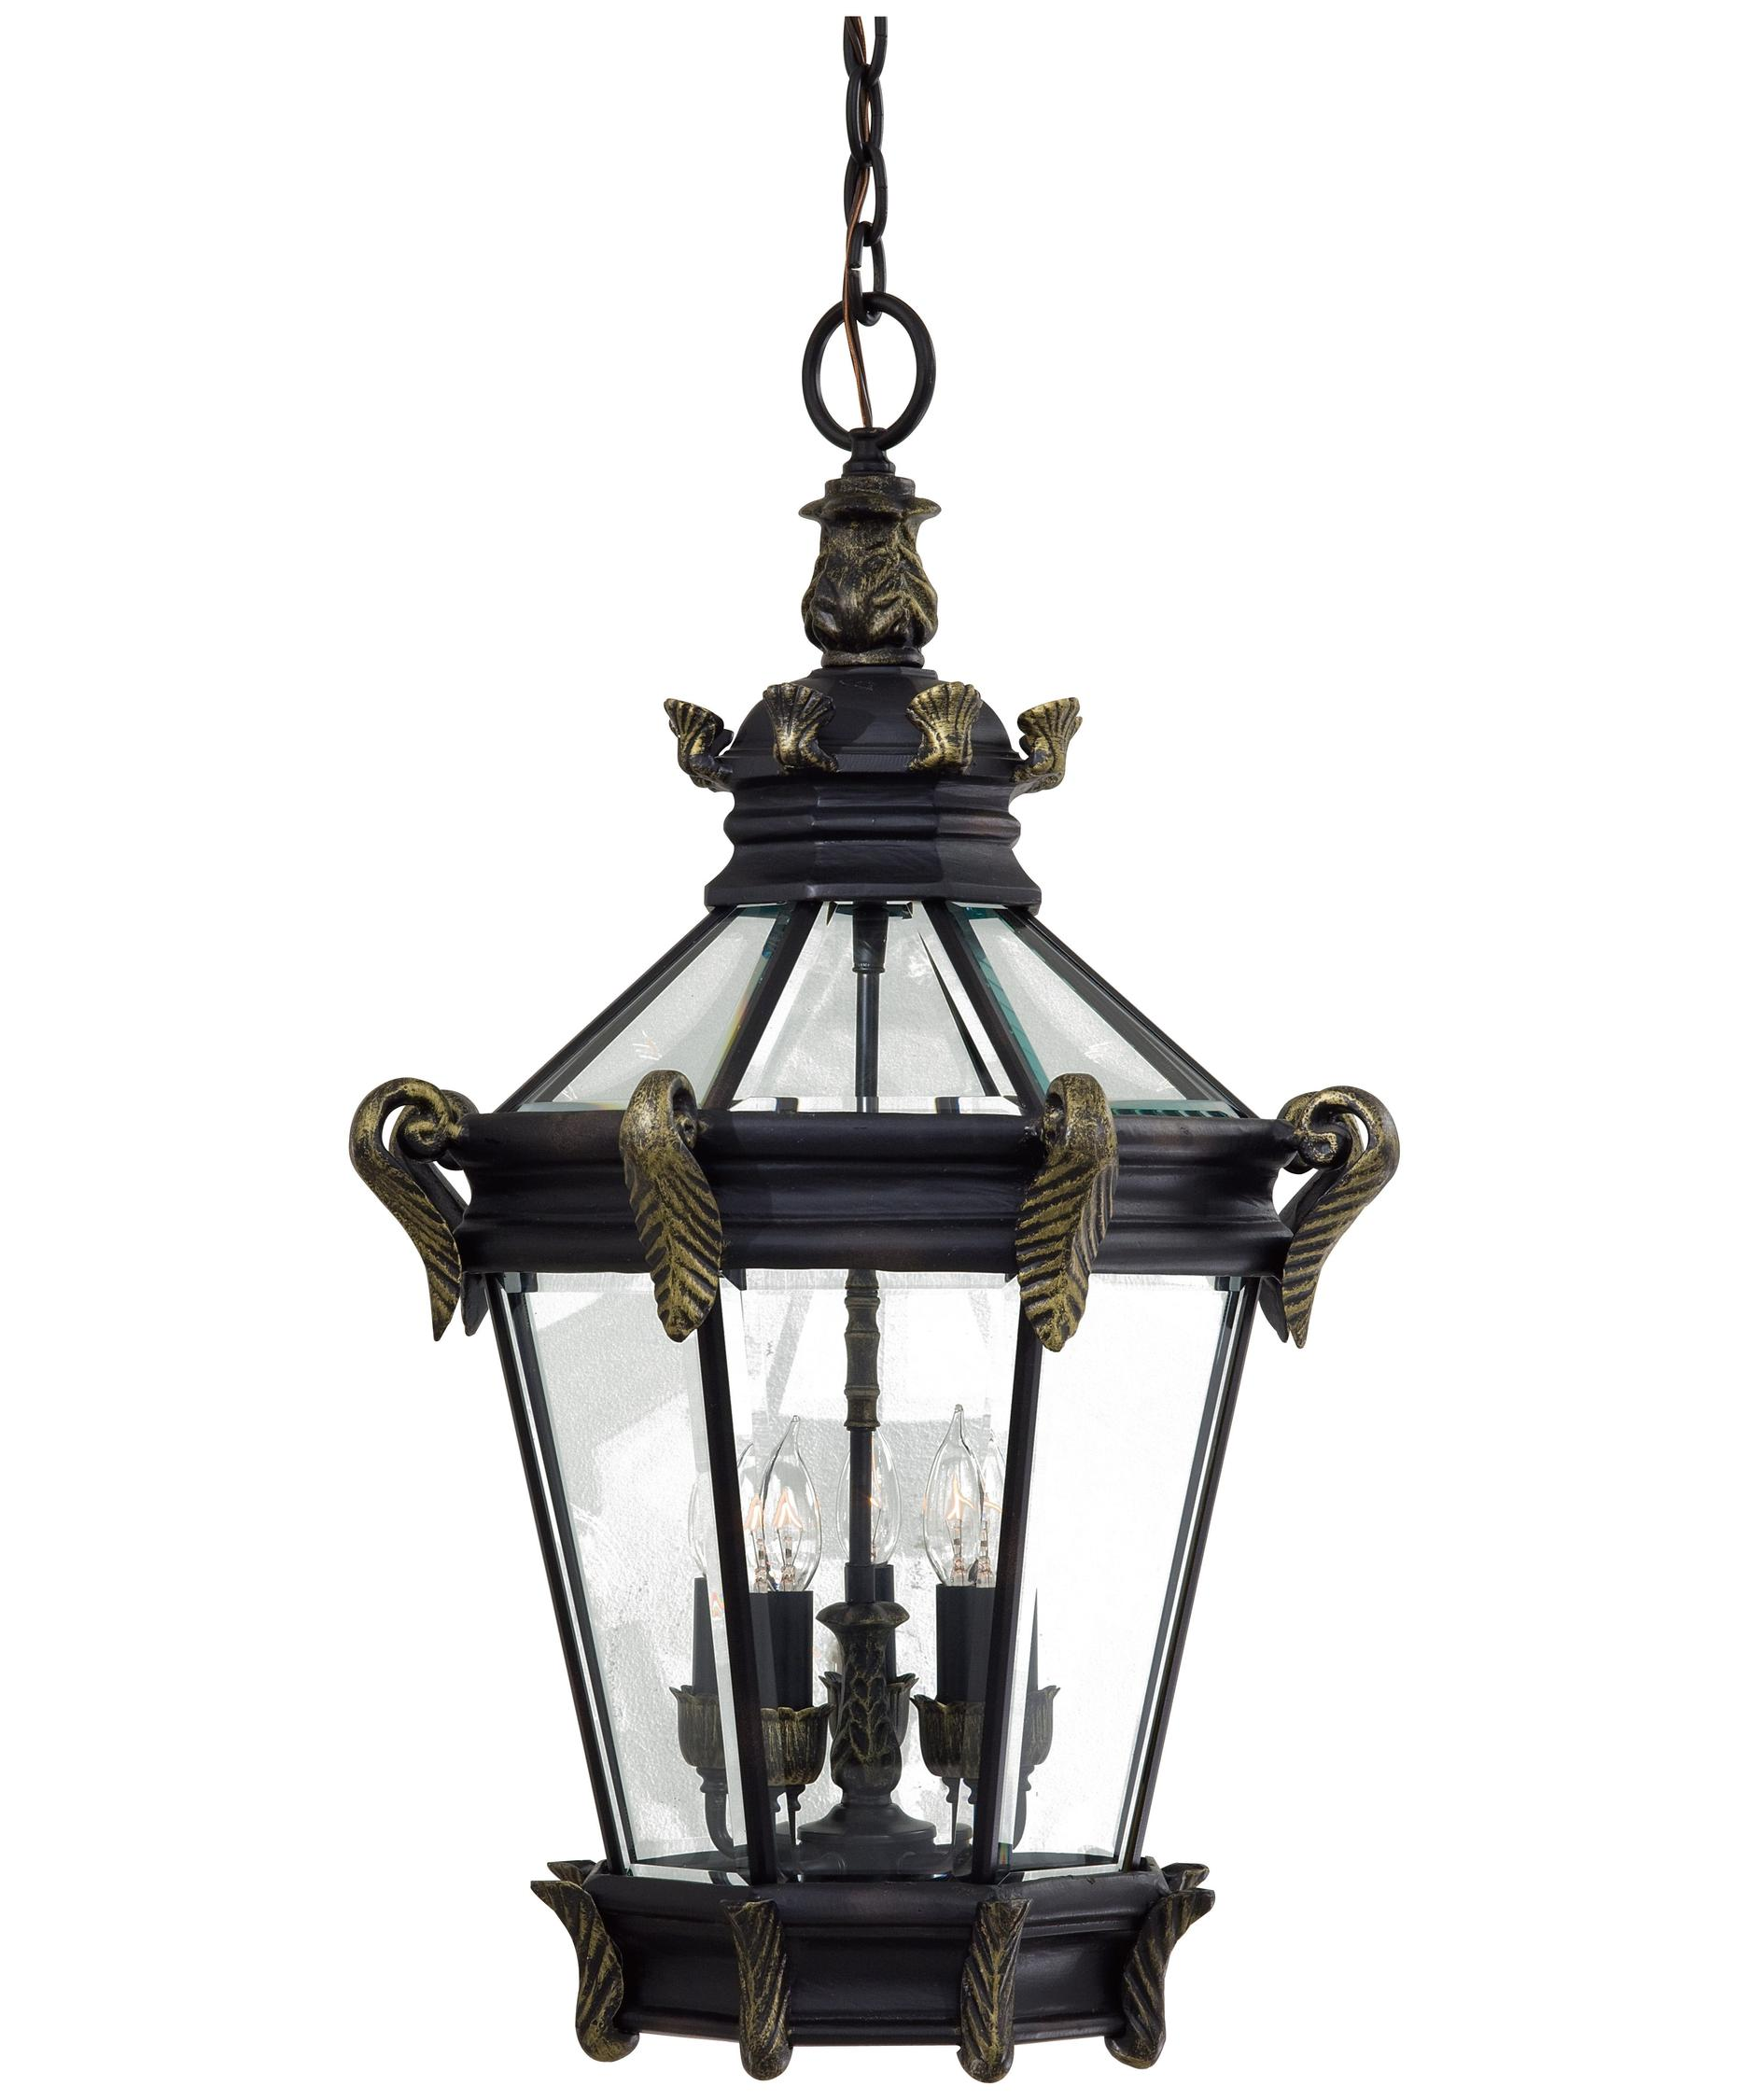 Outdoor hanging lighting - Shown In Heritage With Gold Finish And Clear Beveled Glass